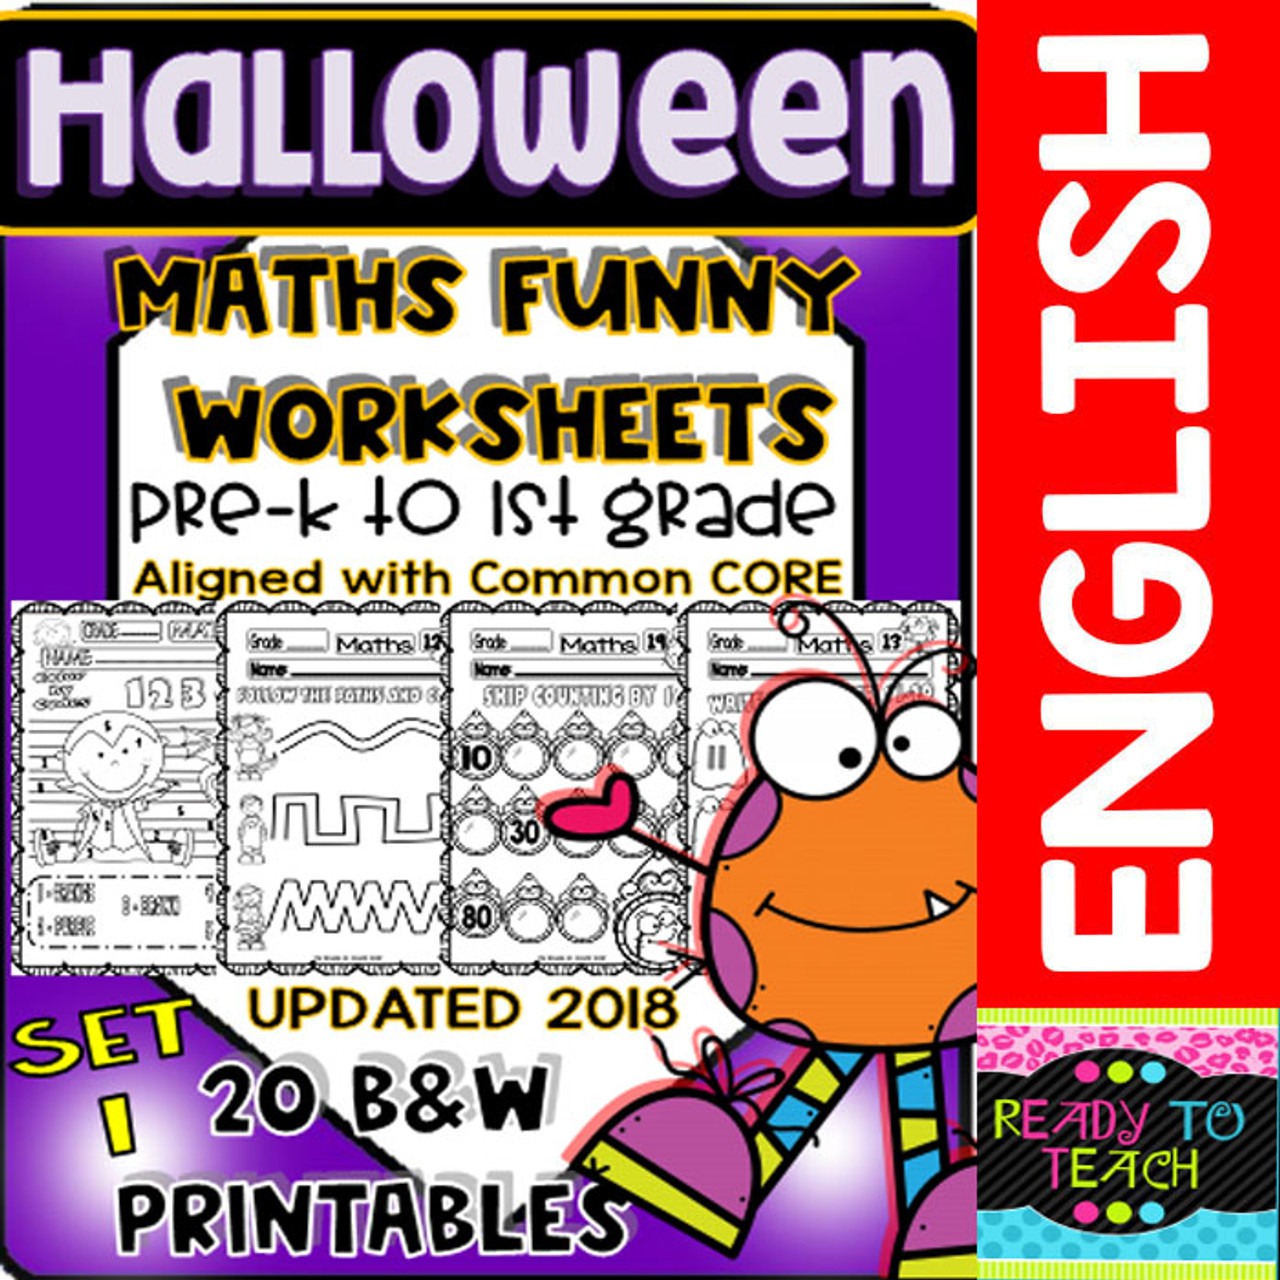 Halloween Maths Funny Worksheets - 20 B\u0026W Printables - Set 1 - Amped Up  Learning [ 1280 x 1280 Pixel ]